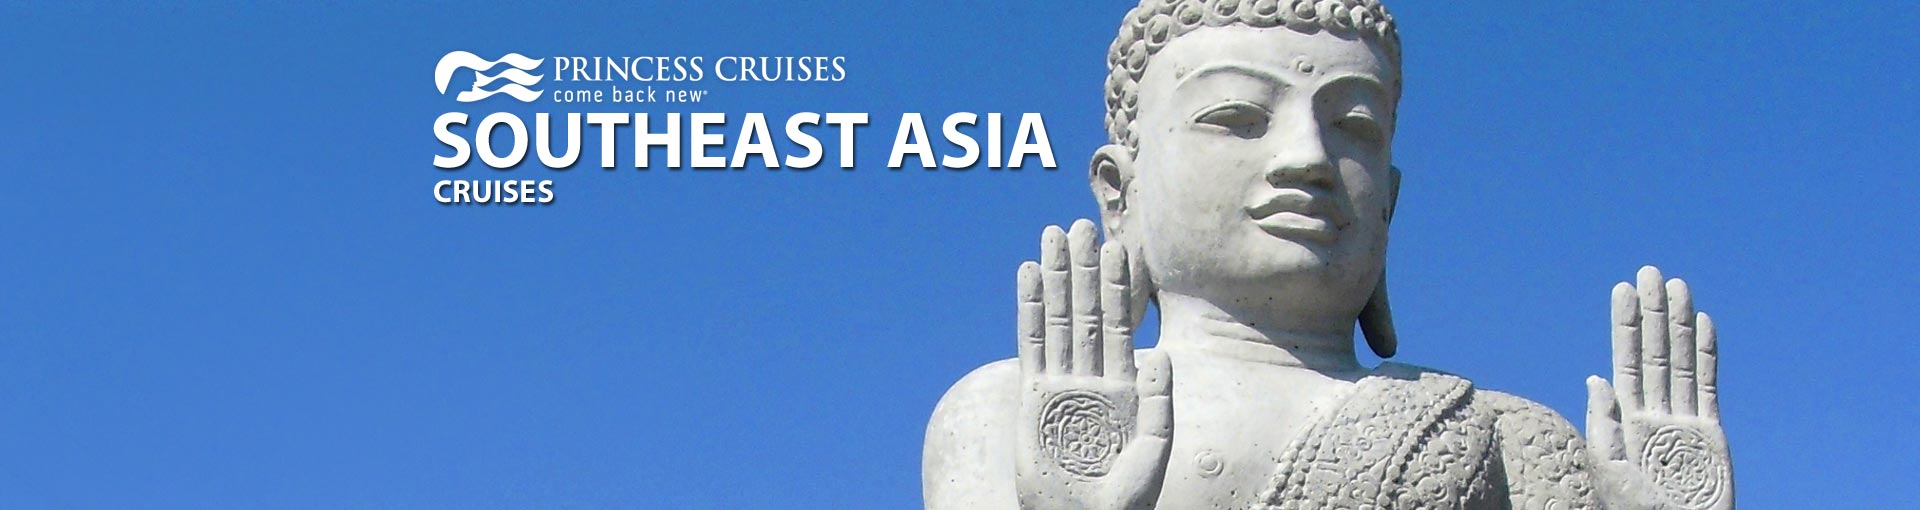 Princess Cruises Southeast Asia Cruises